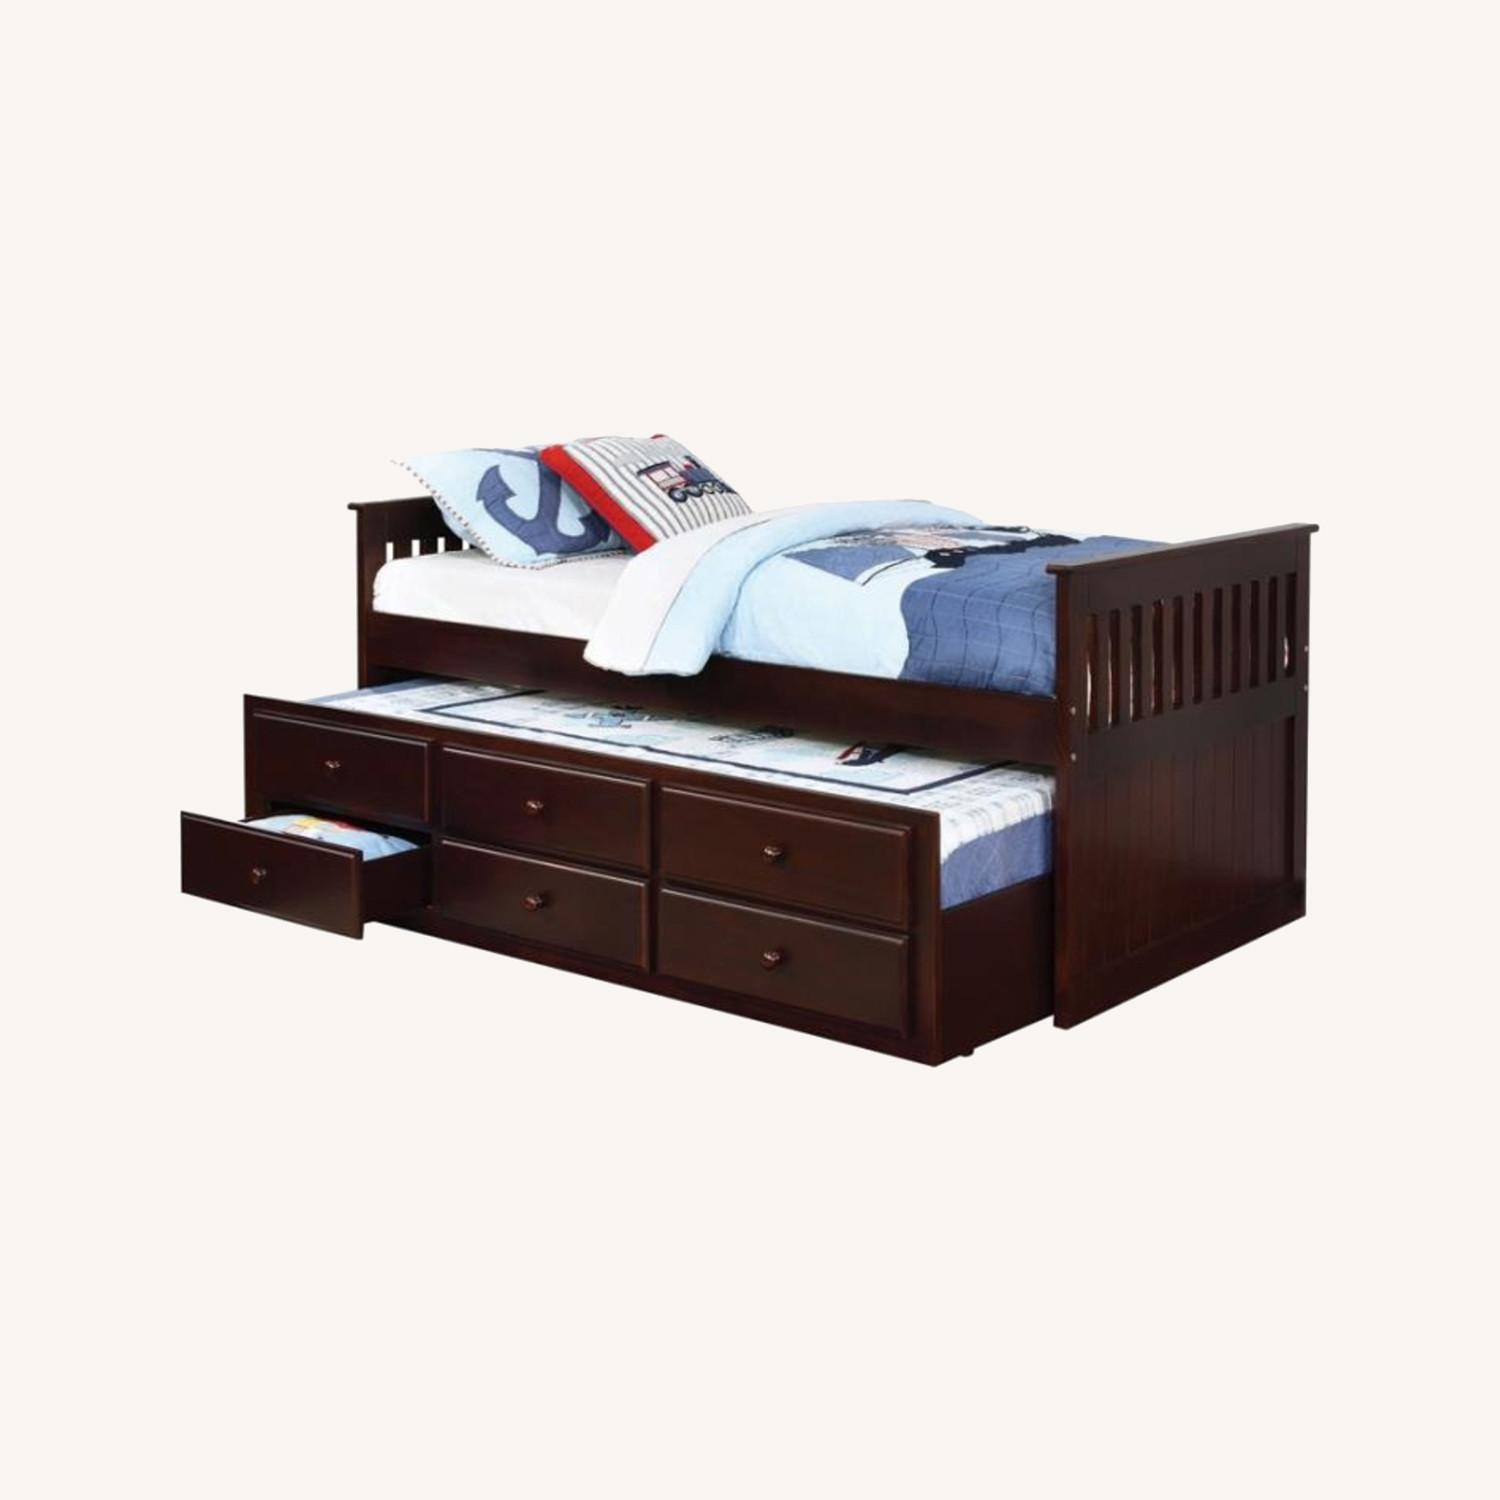 Twin Bed W/ Storage Trundle In Cappuccino Finish - image-4